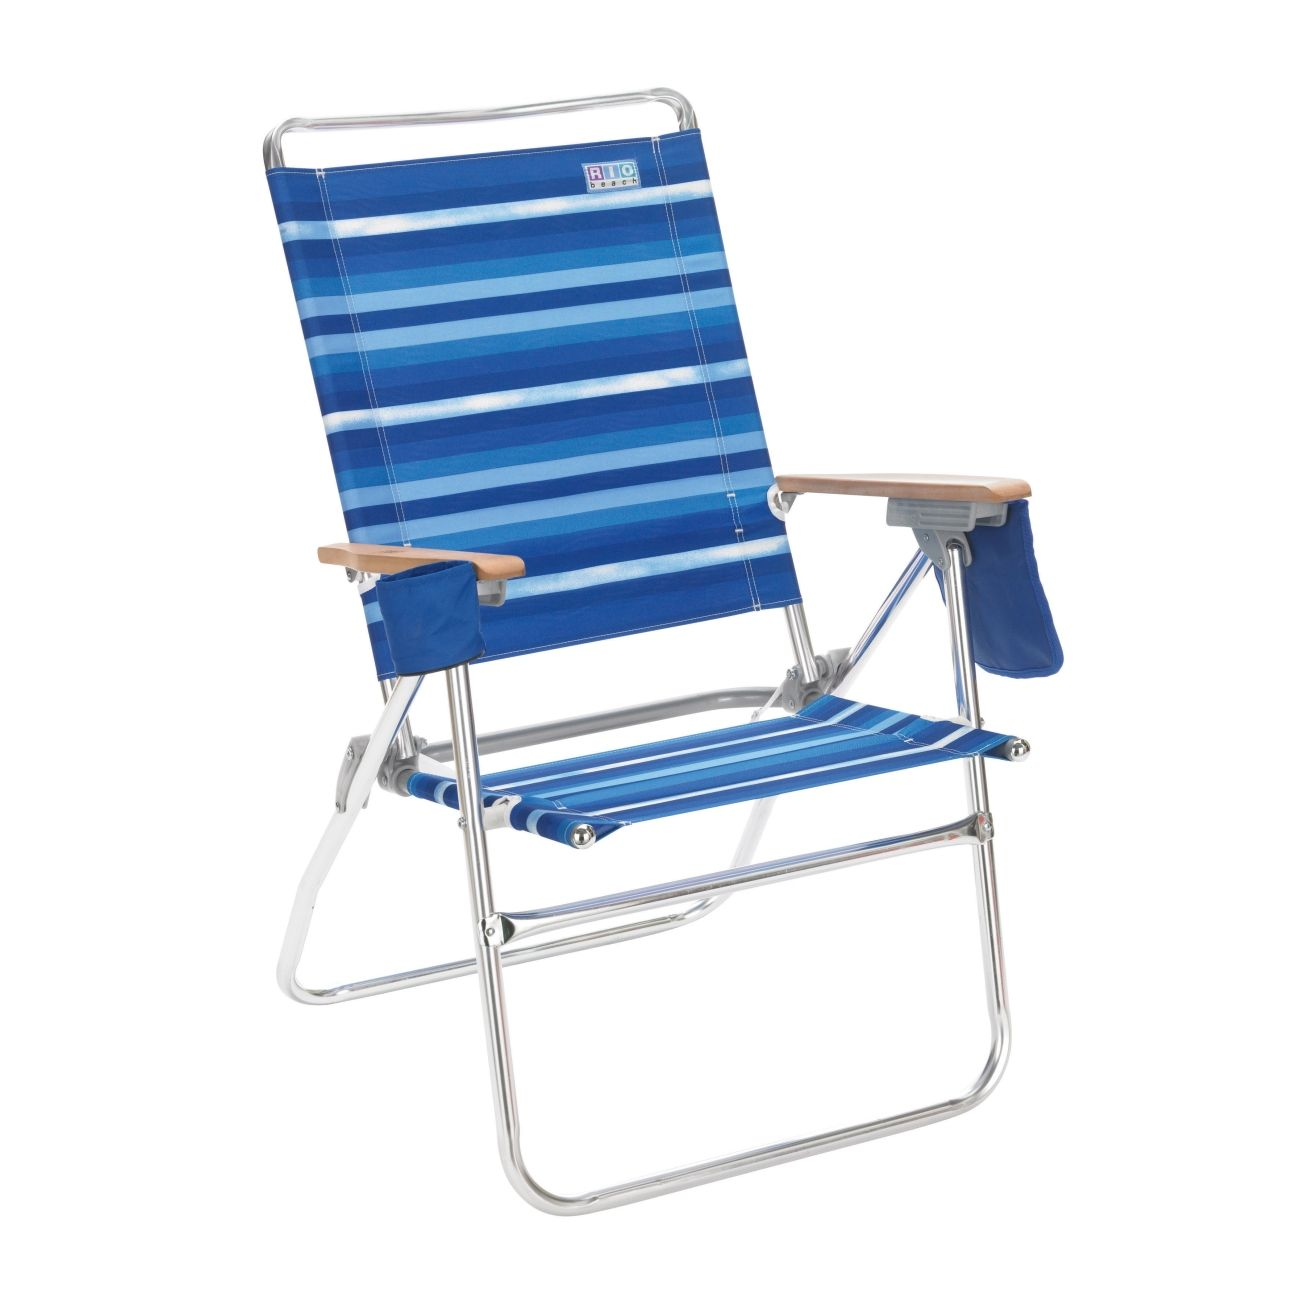 Ace Hardware Camping Chairs